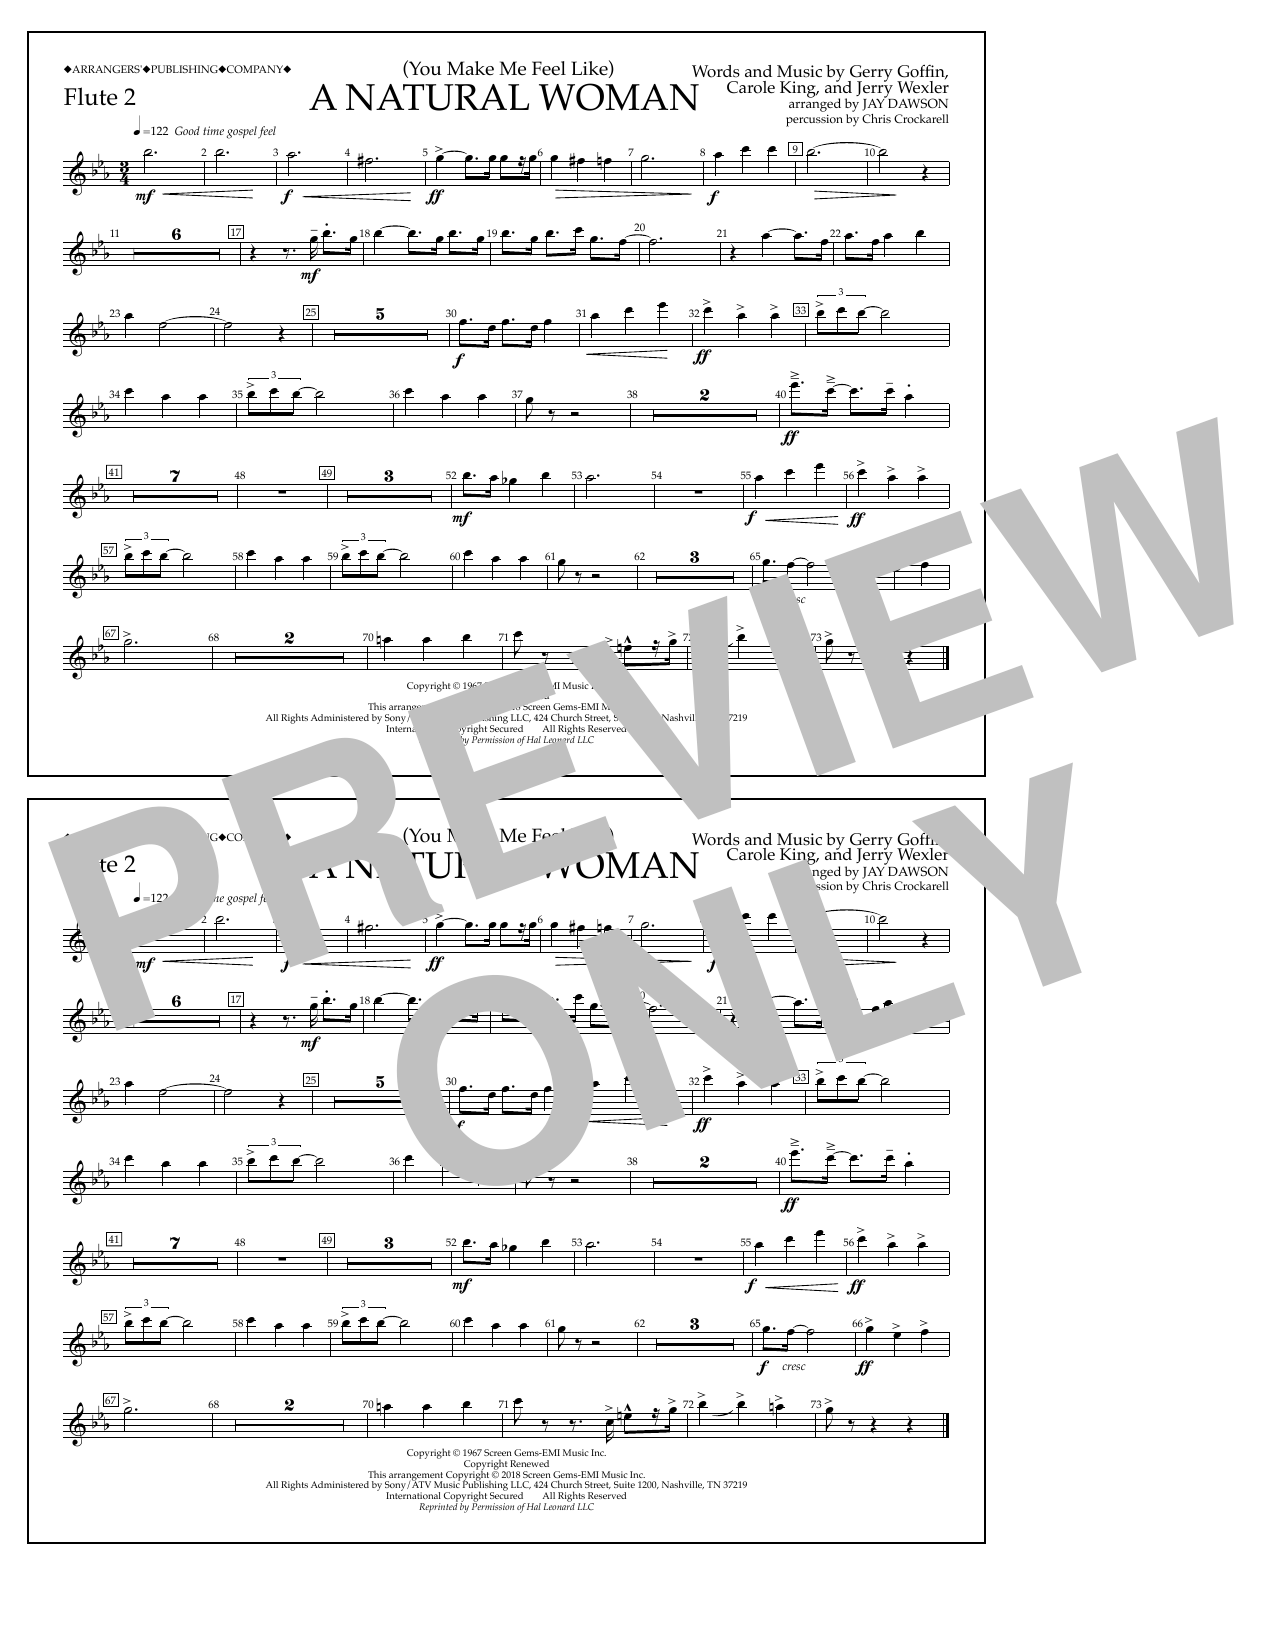 (You Make Me Feel Like) A Natural Woman (arr. Jay Dawson) - Flute 2 (Marching Band)